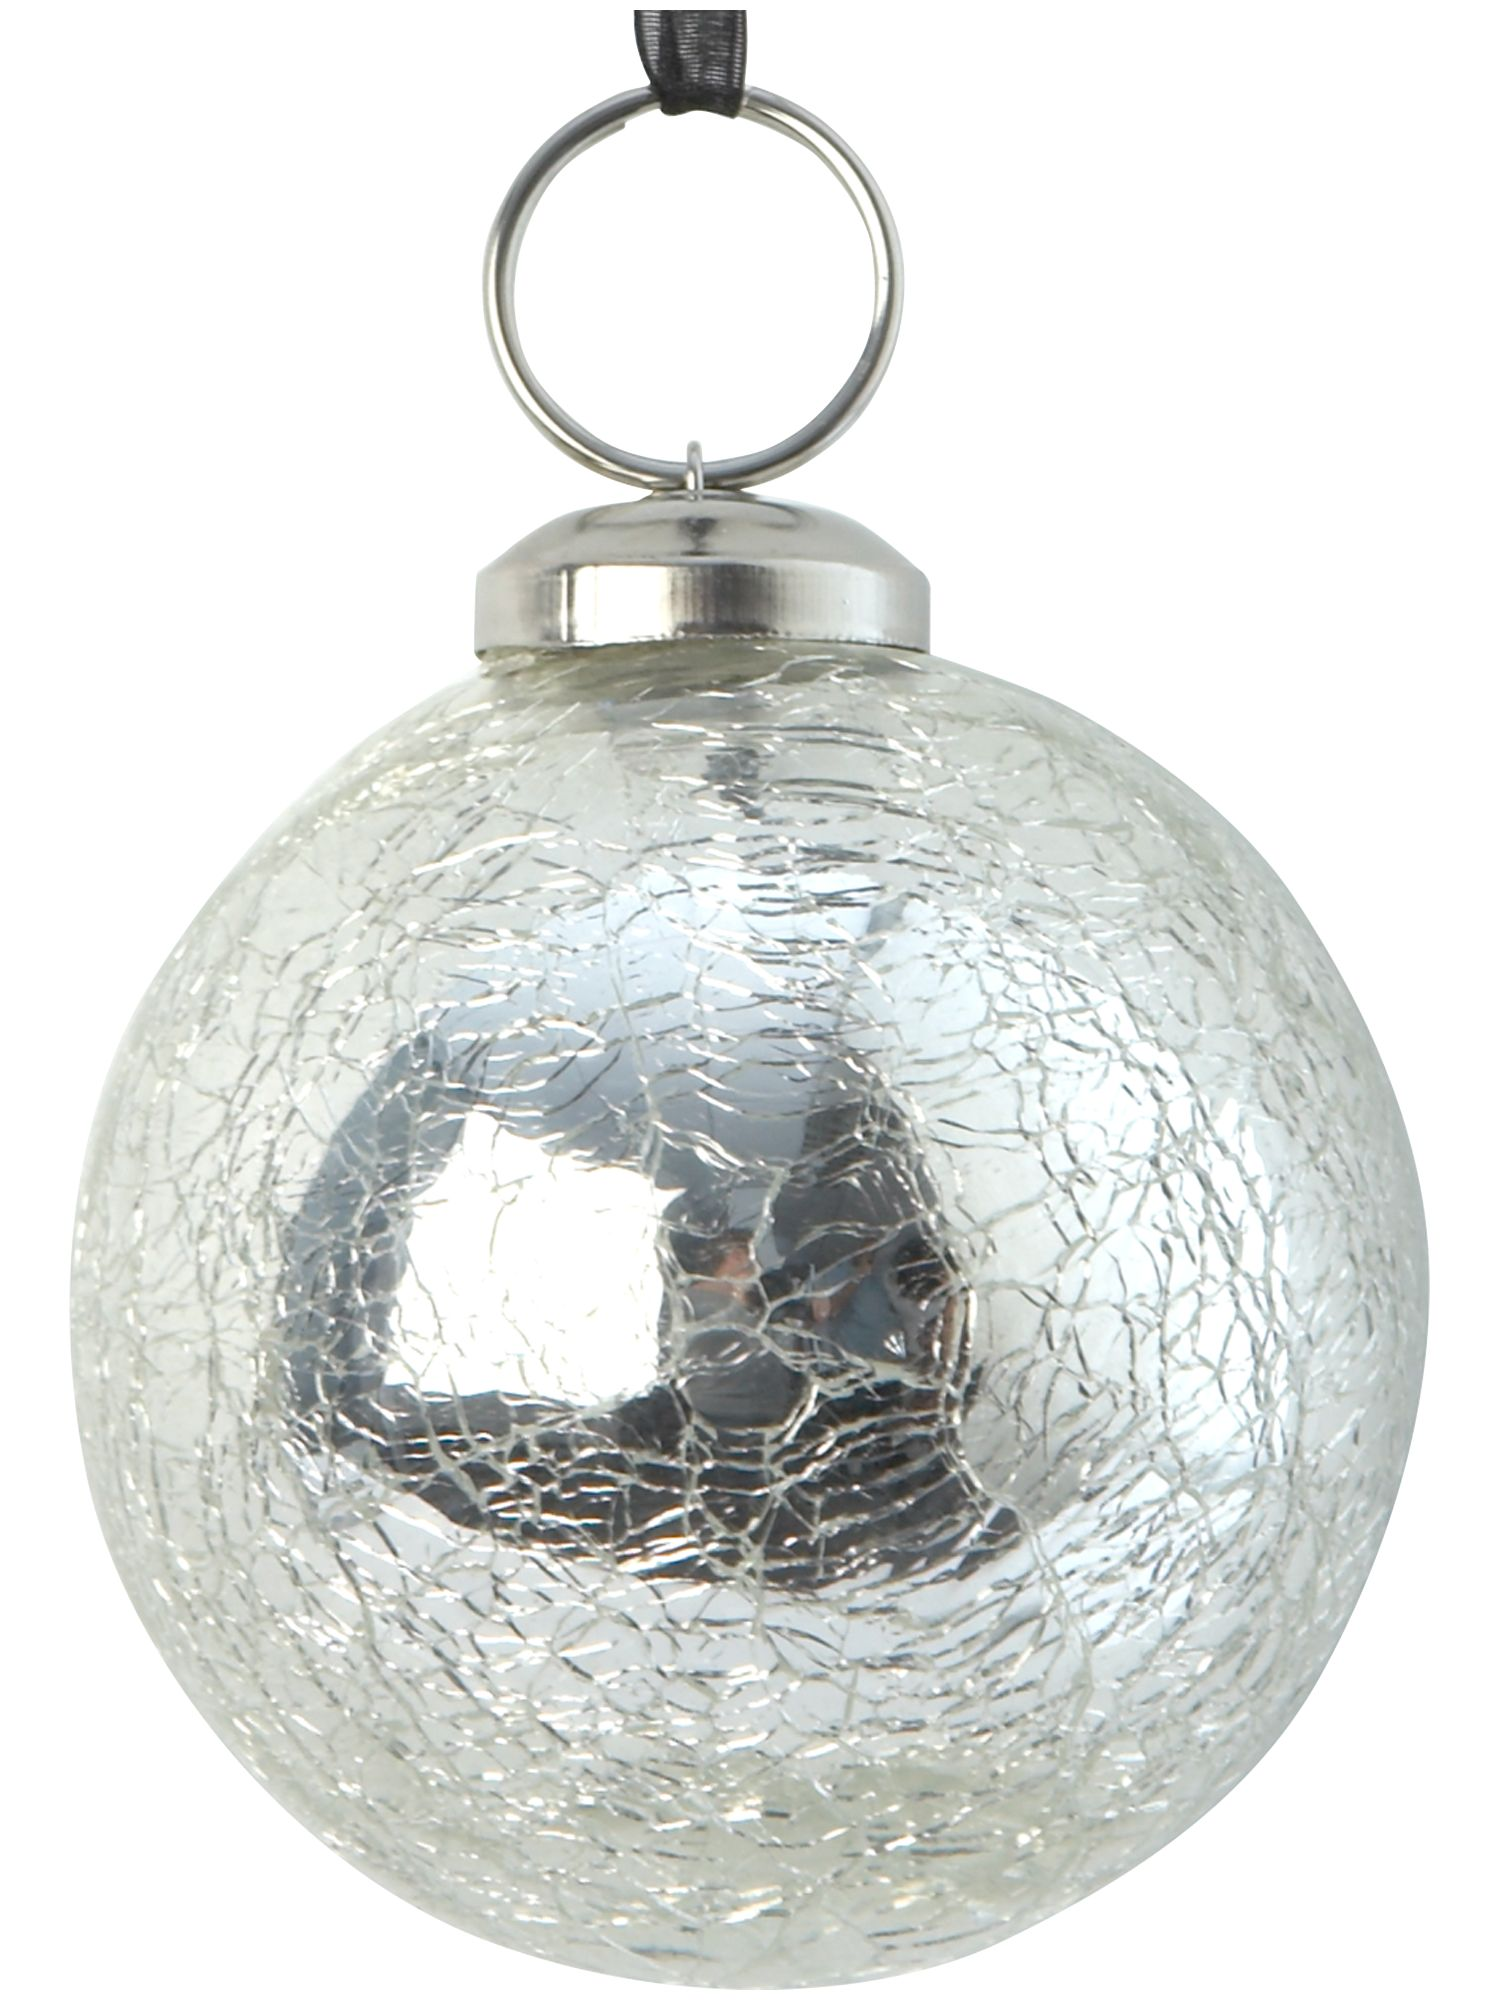 Eclipse silver crackle bauble